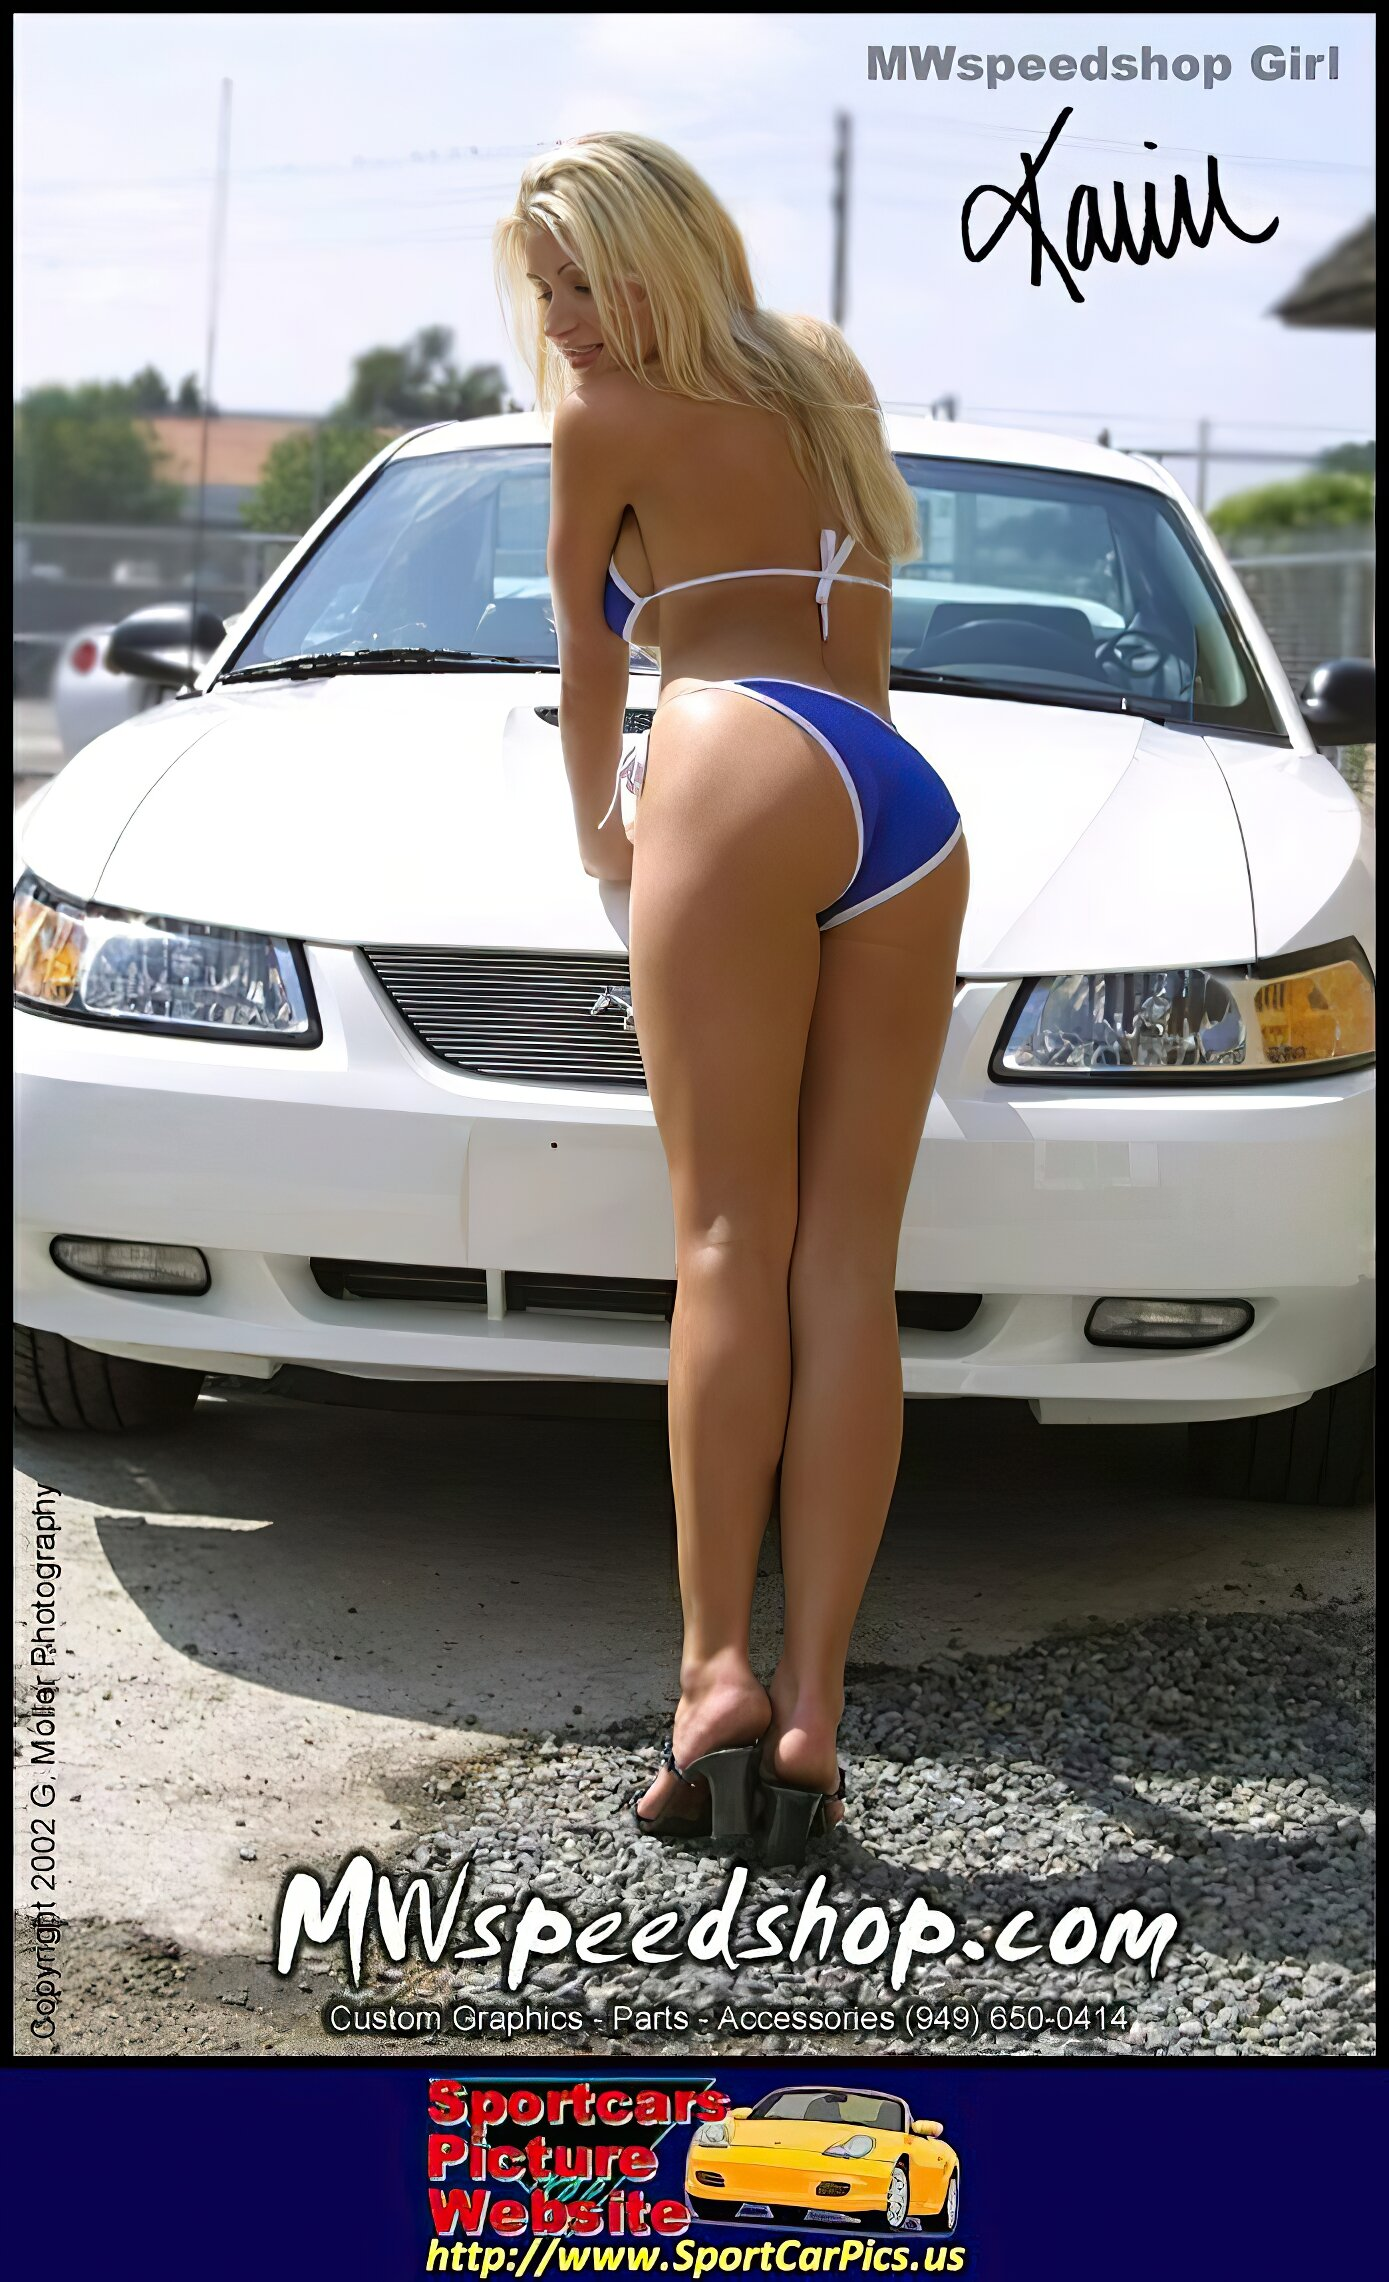 Ford Mustang - ID: 17383